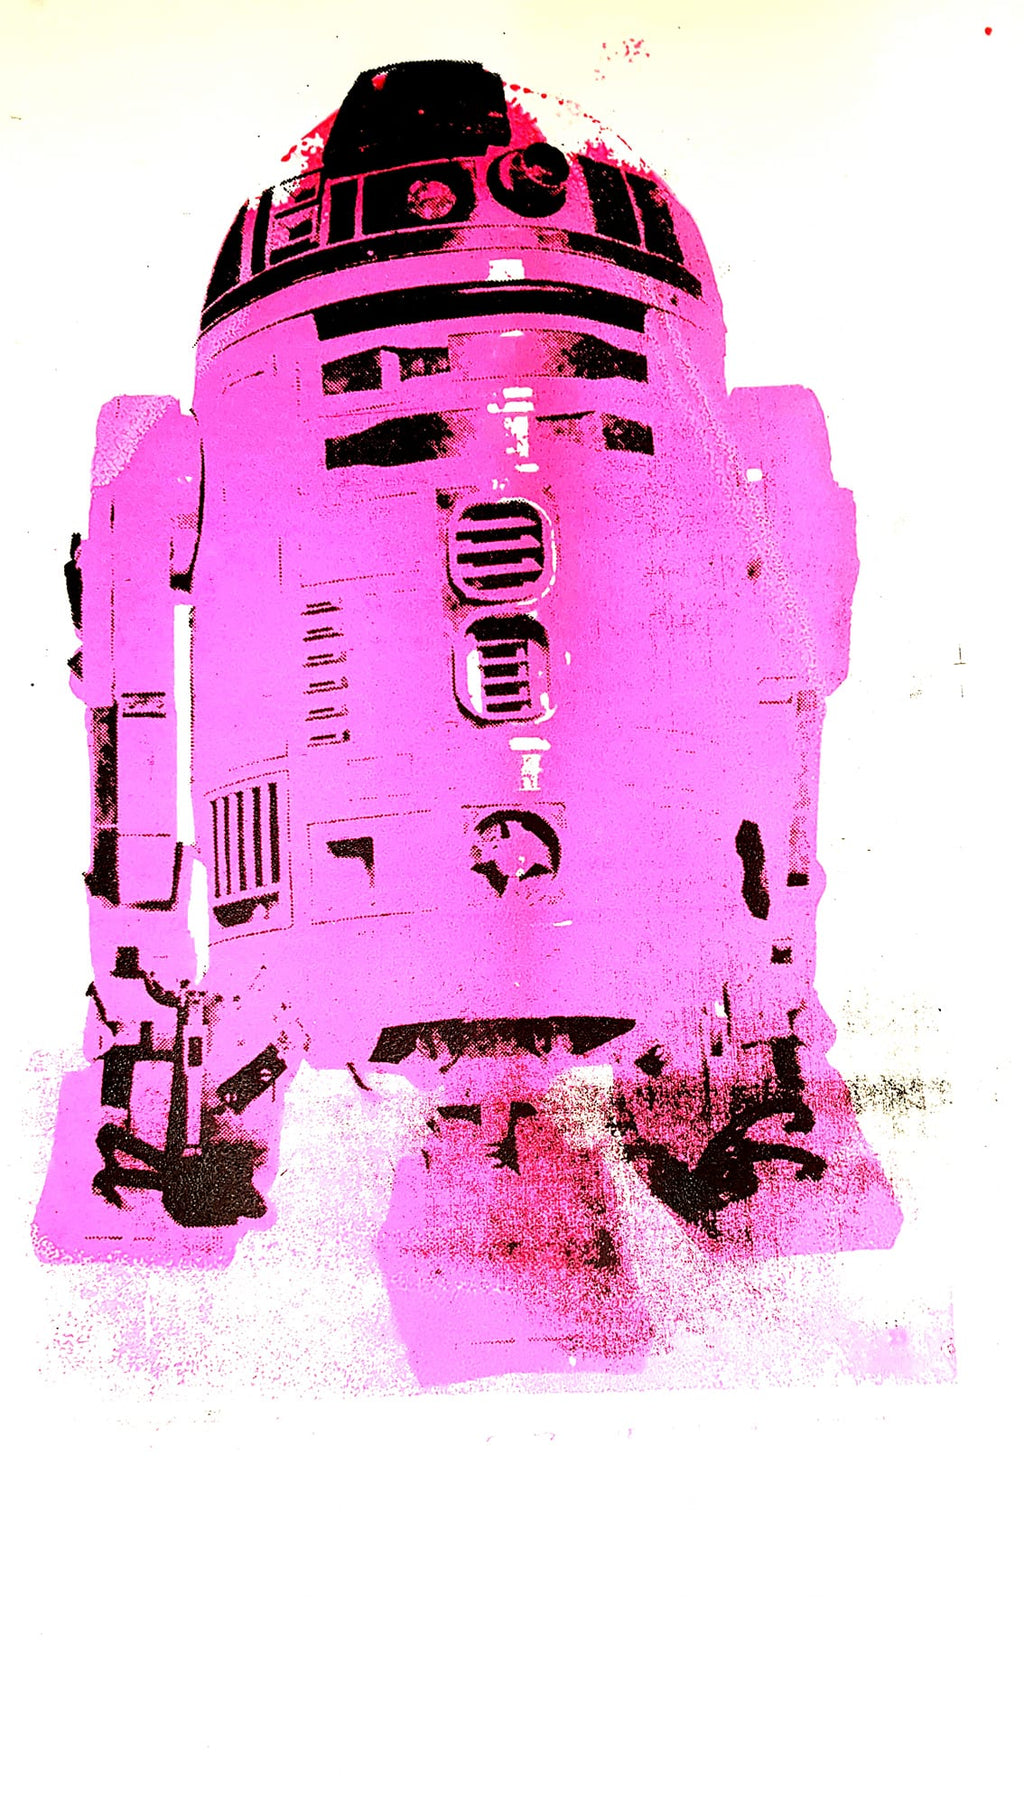 R2D2 Special edition Pink